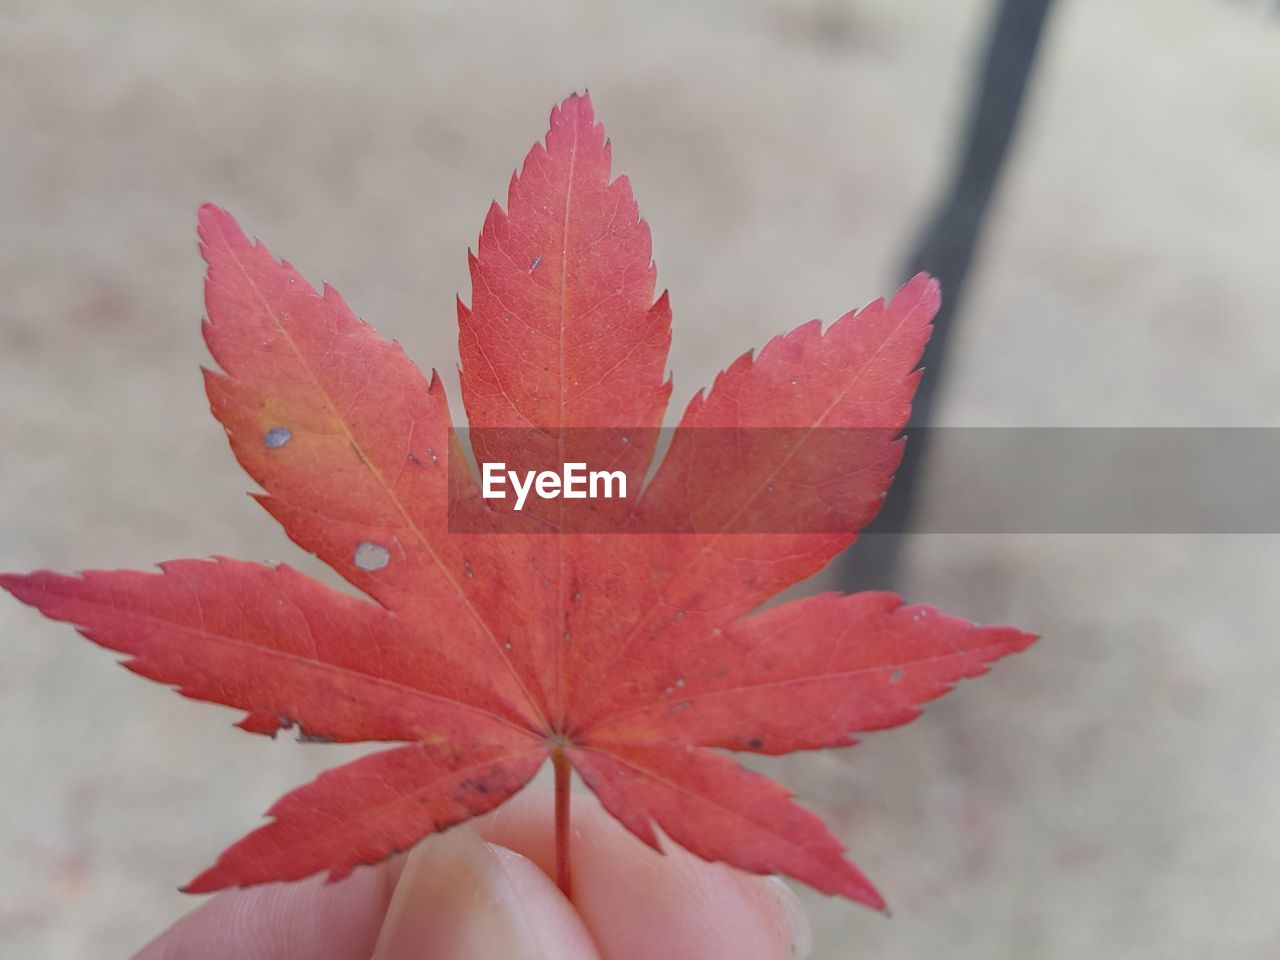 leaf, plant part, close-up, autumn, beauty in nature, focus on foreground, plant, day, vulnerability, nature, fragility, red, maple leaf, change, outdoors, orange color, no people, selective focus, growth, leaf vein, flower head, leaves, natural condition, flower